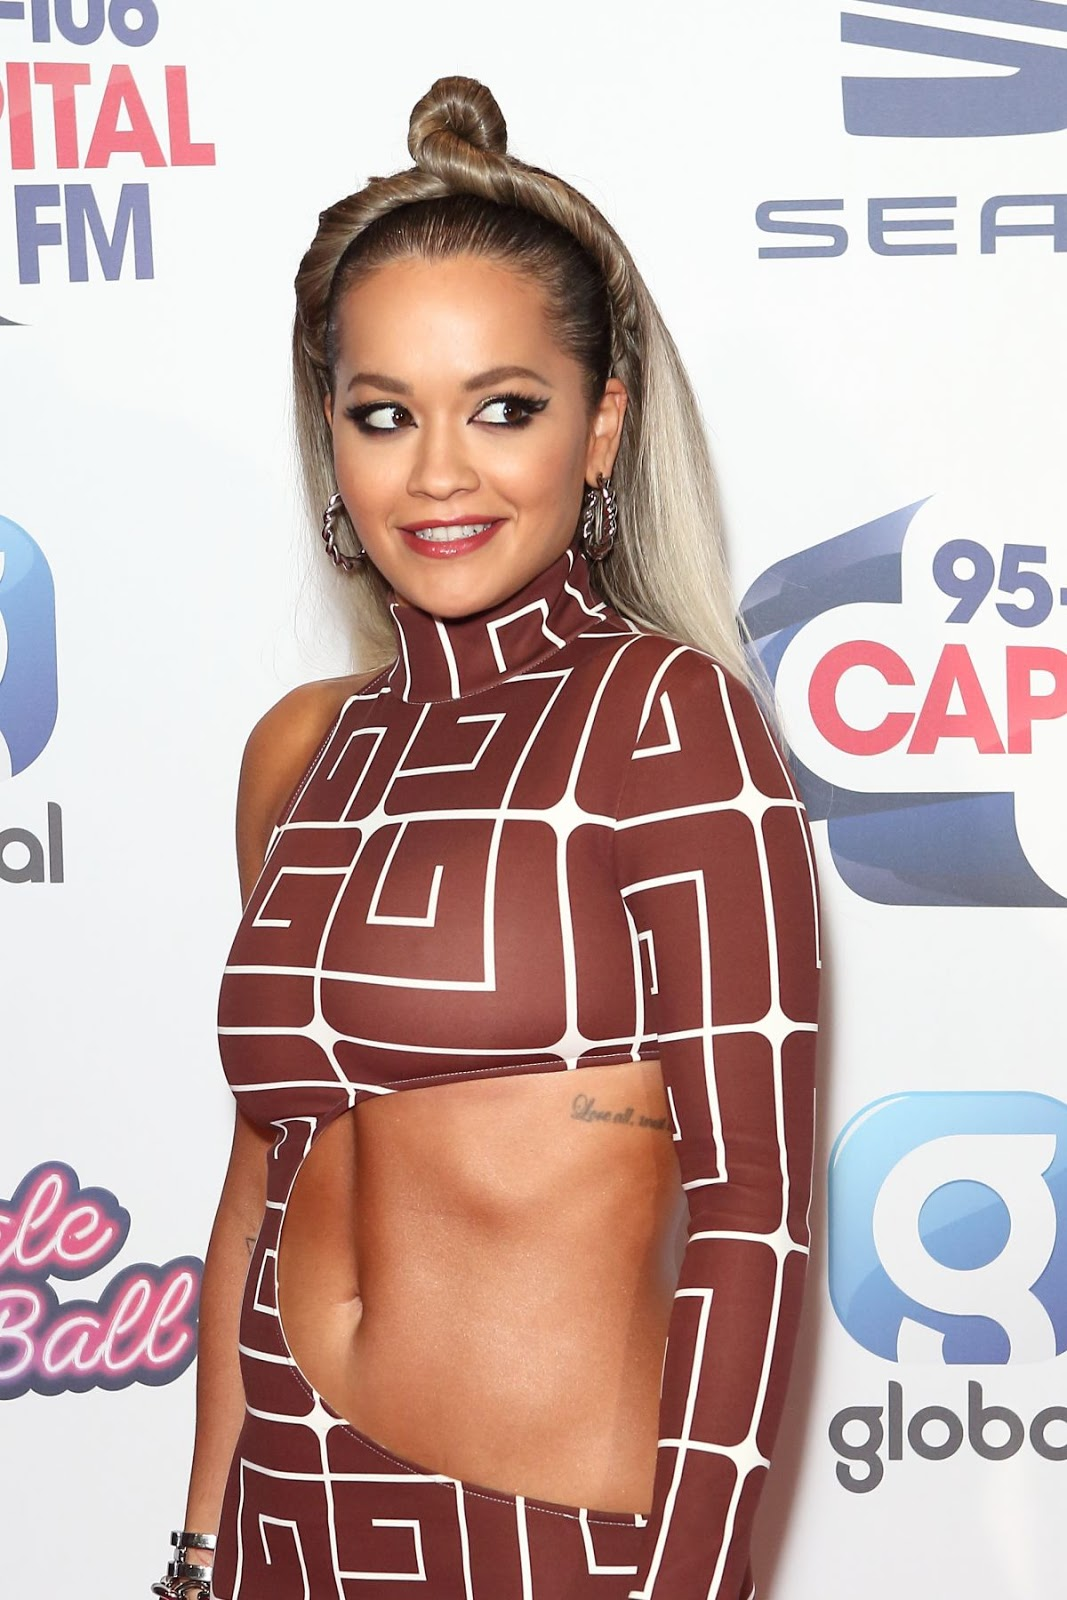 Rita Ora flashes her midriff in a quirky cut-out dress and matching boots at Capital's star-studded Jingle Bell Ball